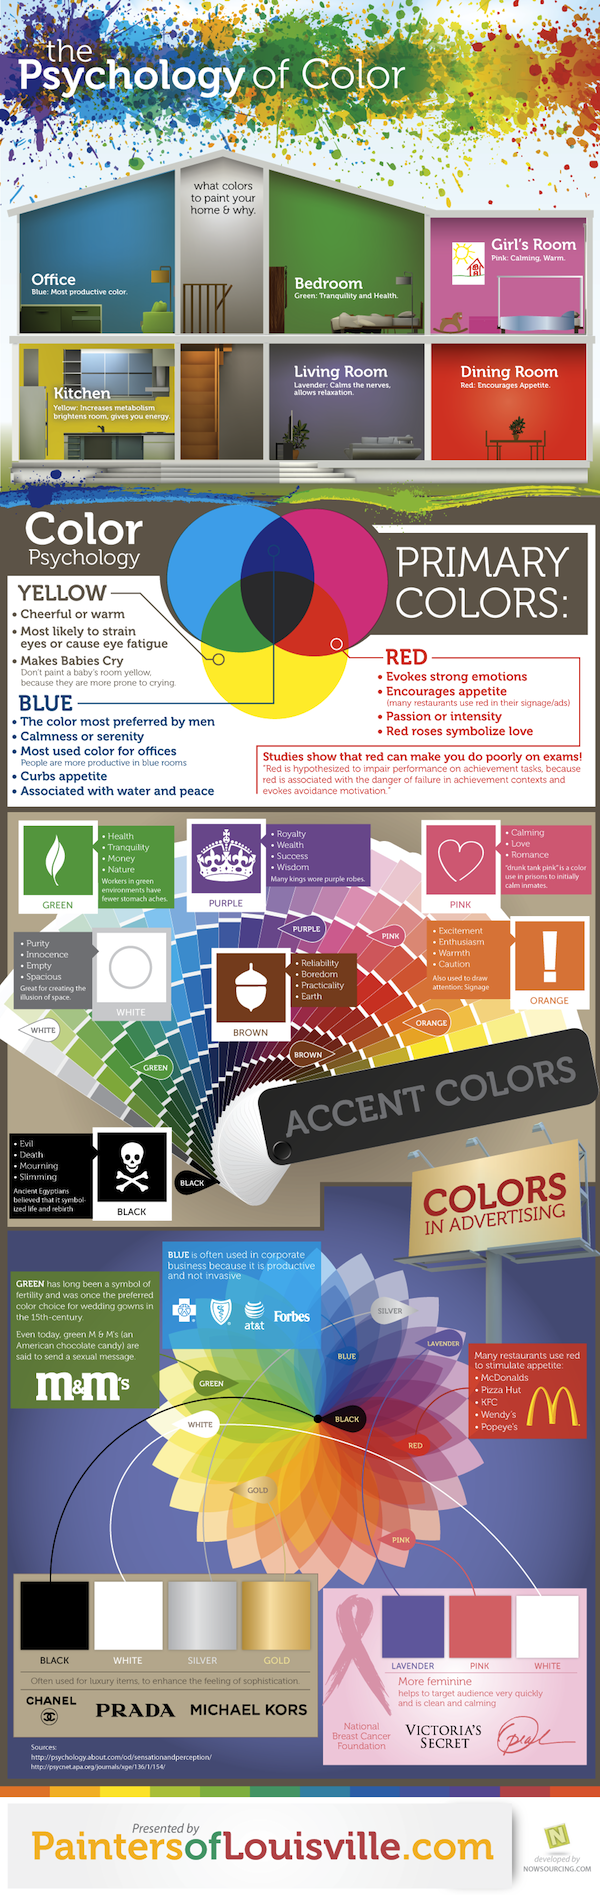 The Psychology of Color Infographic The Psychology of Color [Infographic]